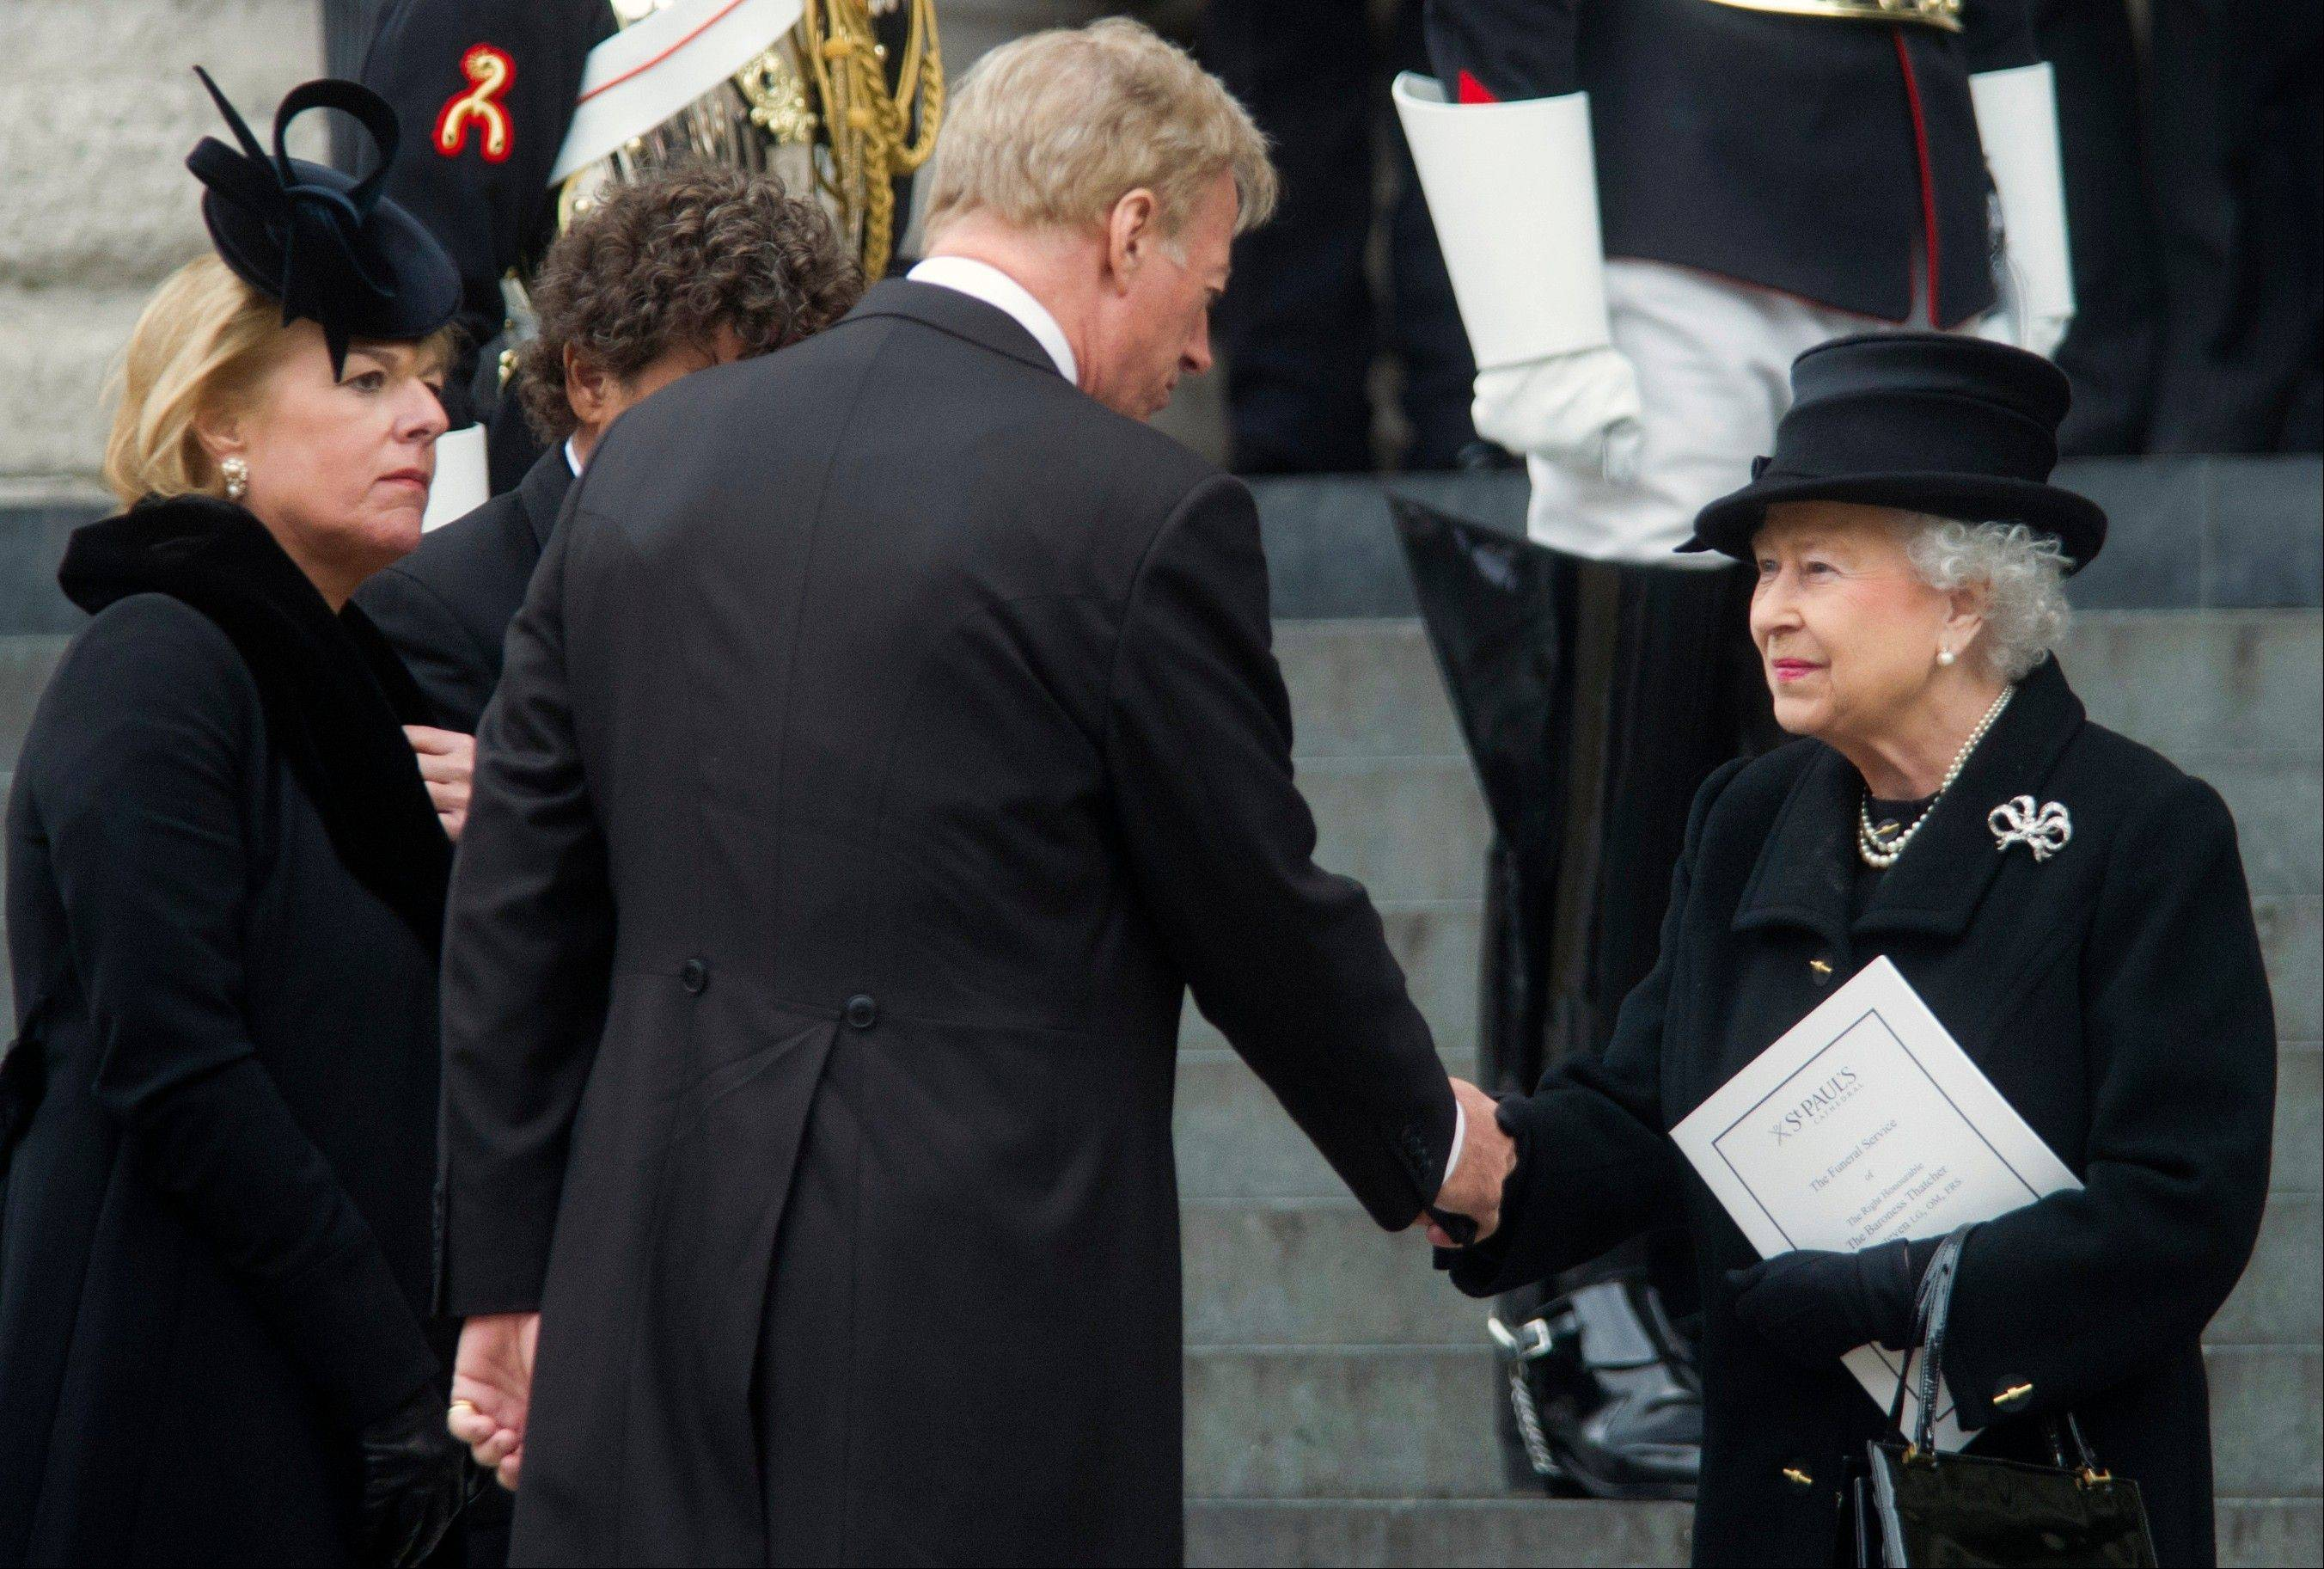 Carol Thatcher, left, the daughter of former British Prime Minister Margaret Thatcher looks on as her brother Mark Thatcher, center, shakes hands with Britain's Queen Elizabeth II, following the former prime minister's funeral ceremony at St. Paul's Cathedral, London, Wednesday, April 17, 2013. Margaret Thatcher, Britain's Iron Lady, was laid to rest Wednesday with a level of pomp and protest reflecting her status as a commanding, polarizing political figure.